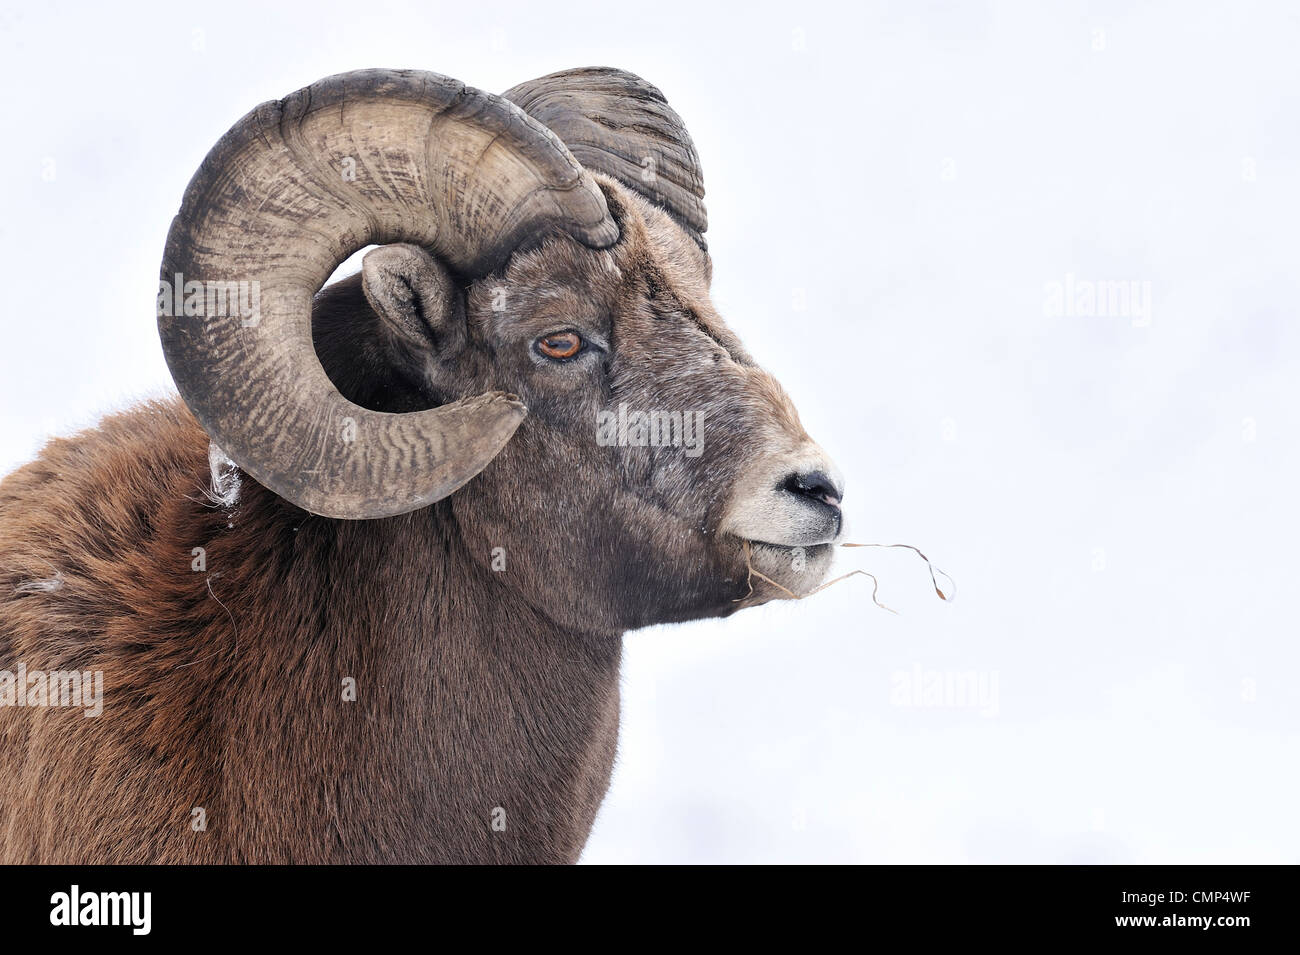 A  portrait of a Rocky mountain bighorn sheep - Stock Image